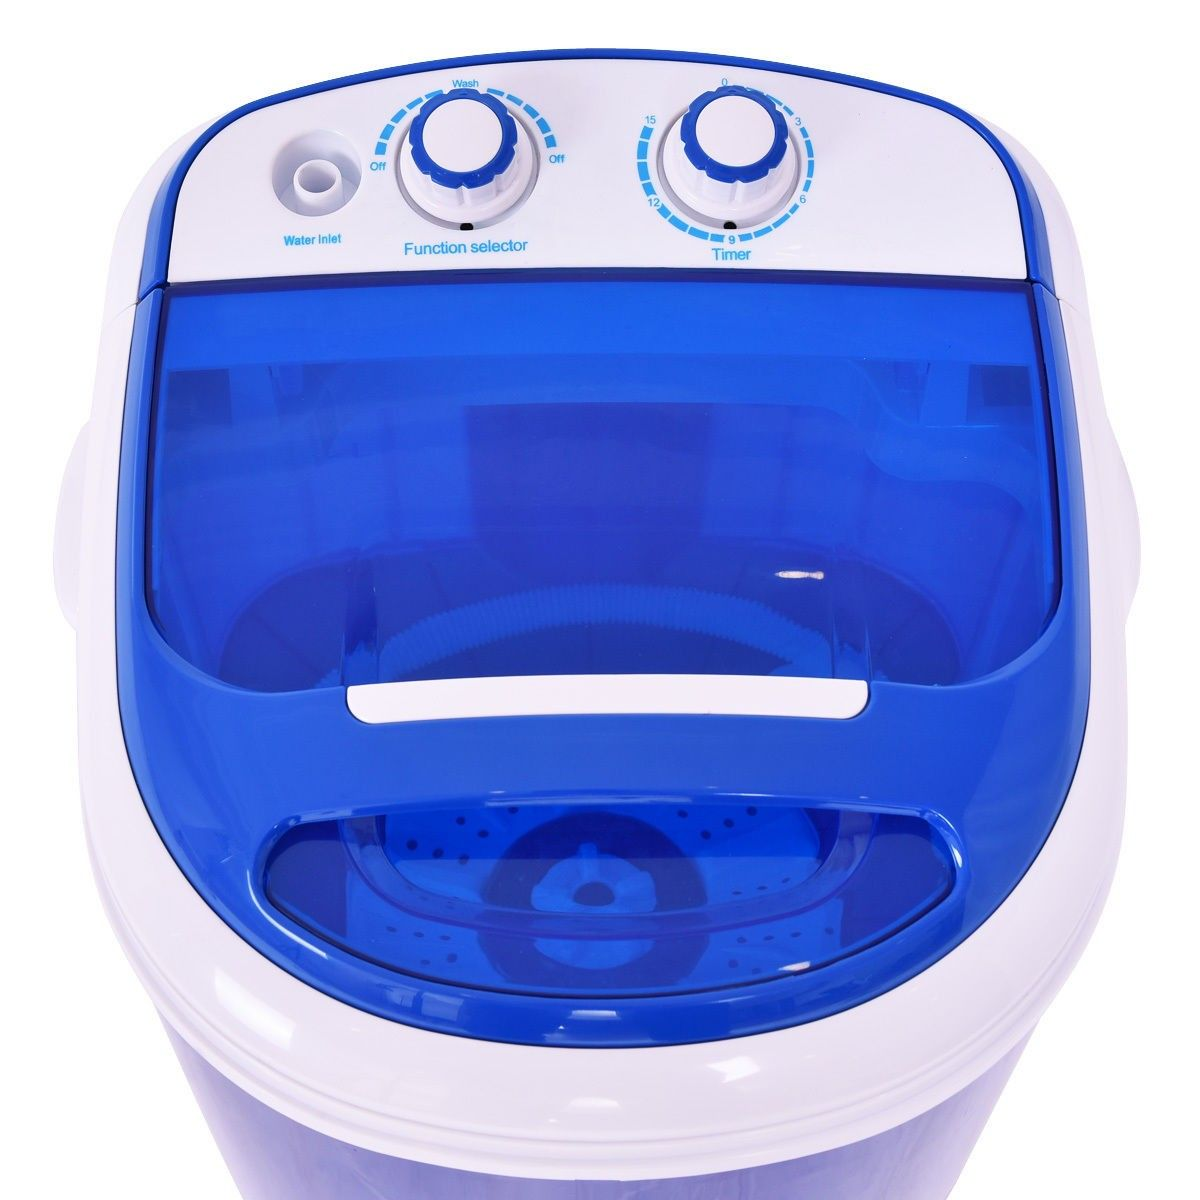 Mini Portable Washer Washing Machine Color Blue Power 200 W Voltage 110 V 60 Hz Timer 15 Minutes Washing Machine Portable Washer Laundry Washing Machine